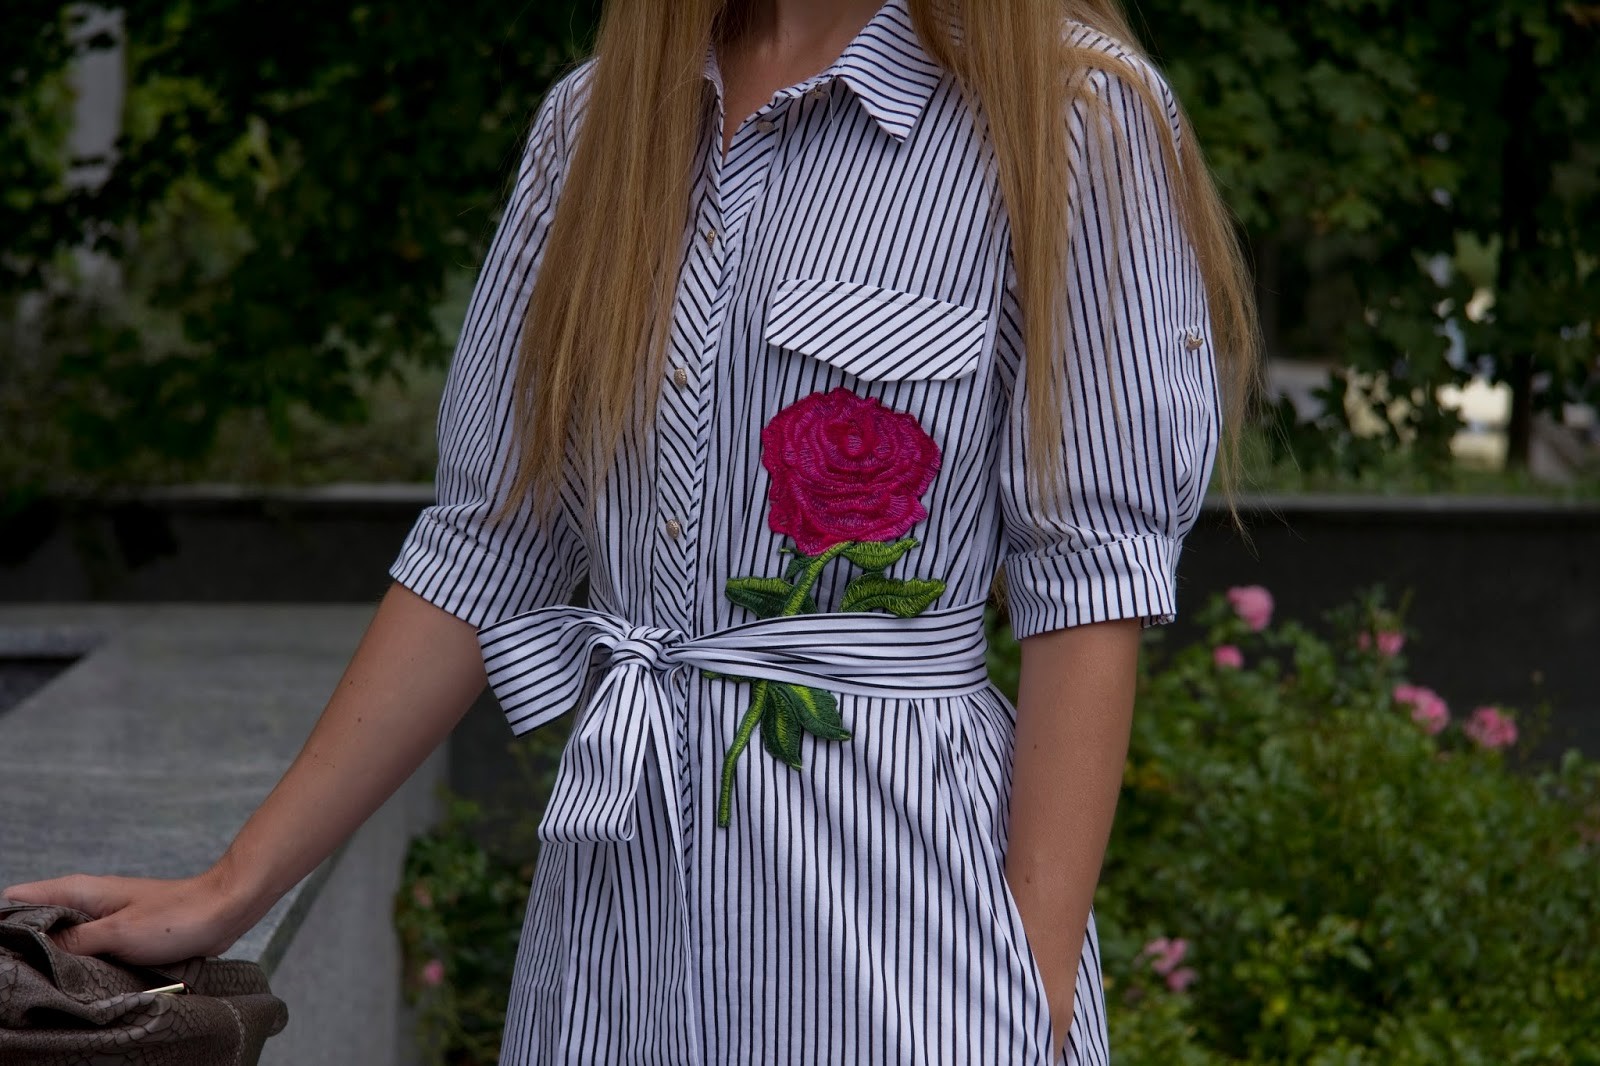 D&G inspired embroidered rose dress